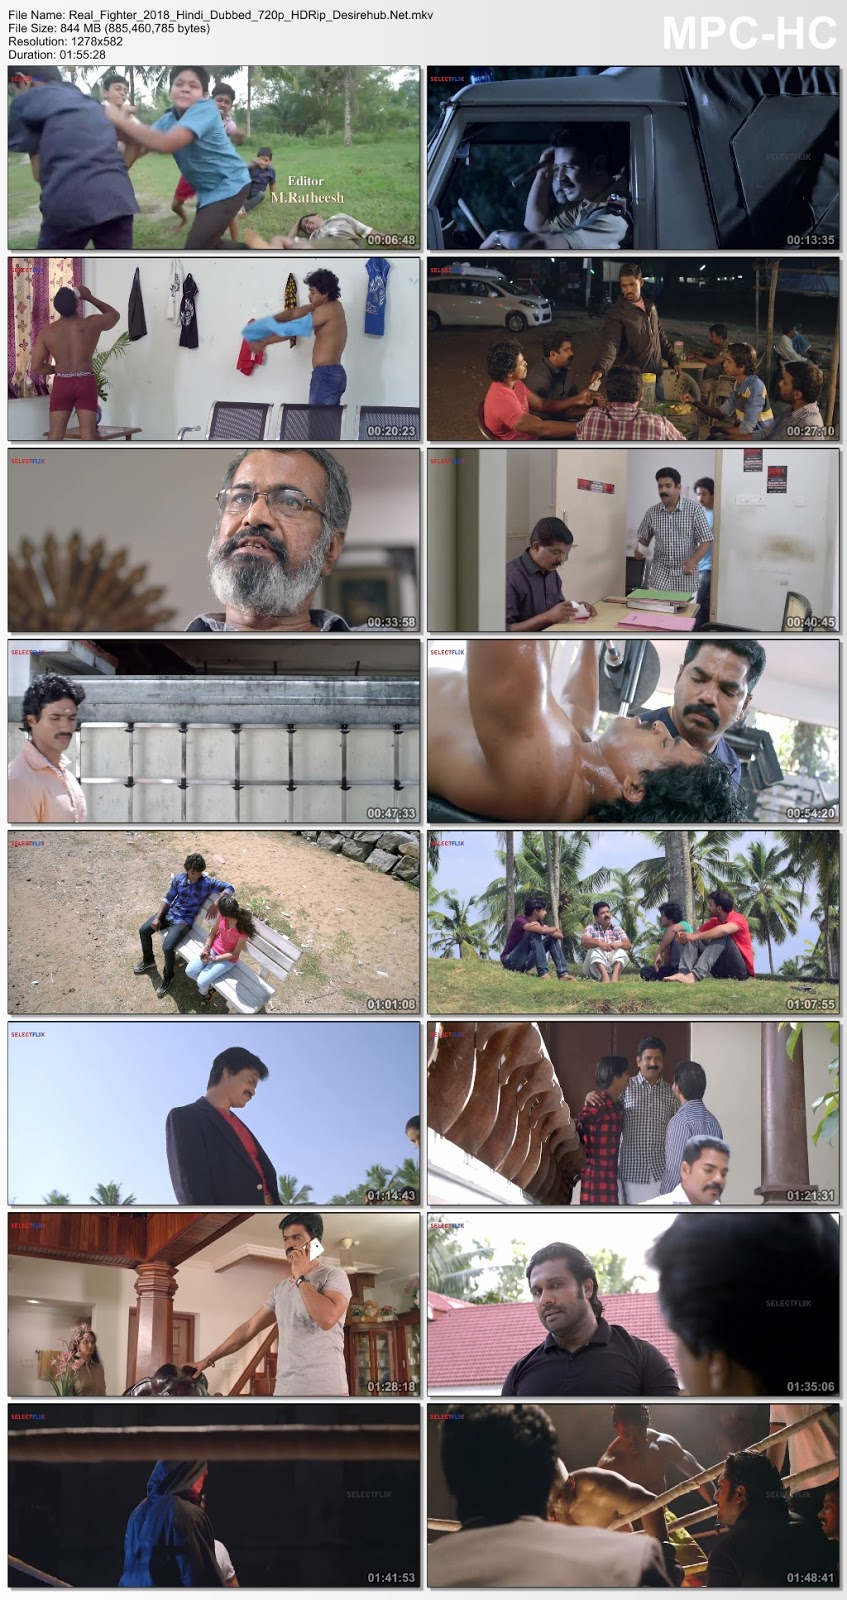 The Real Fighter 2018 Hindi Dubbed 720p HDRip 850MB Desirehub